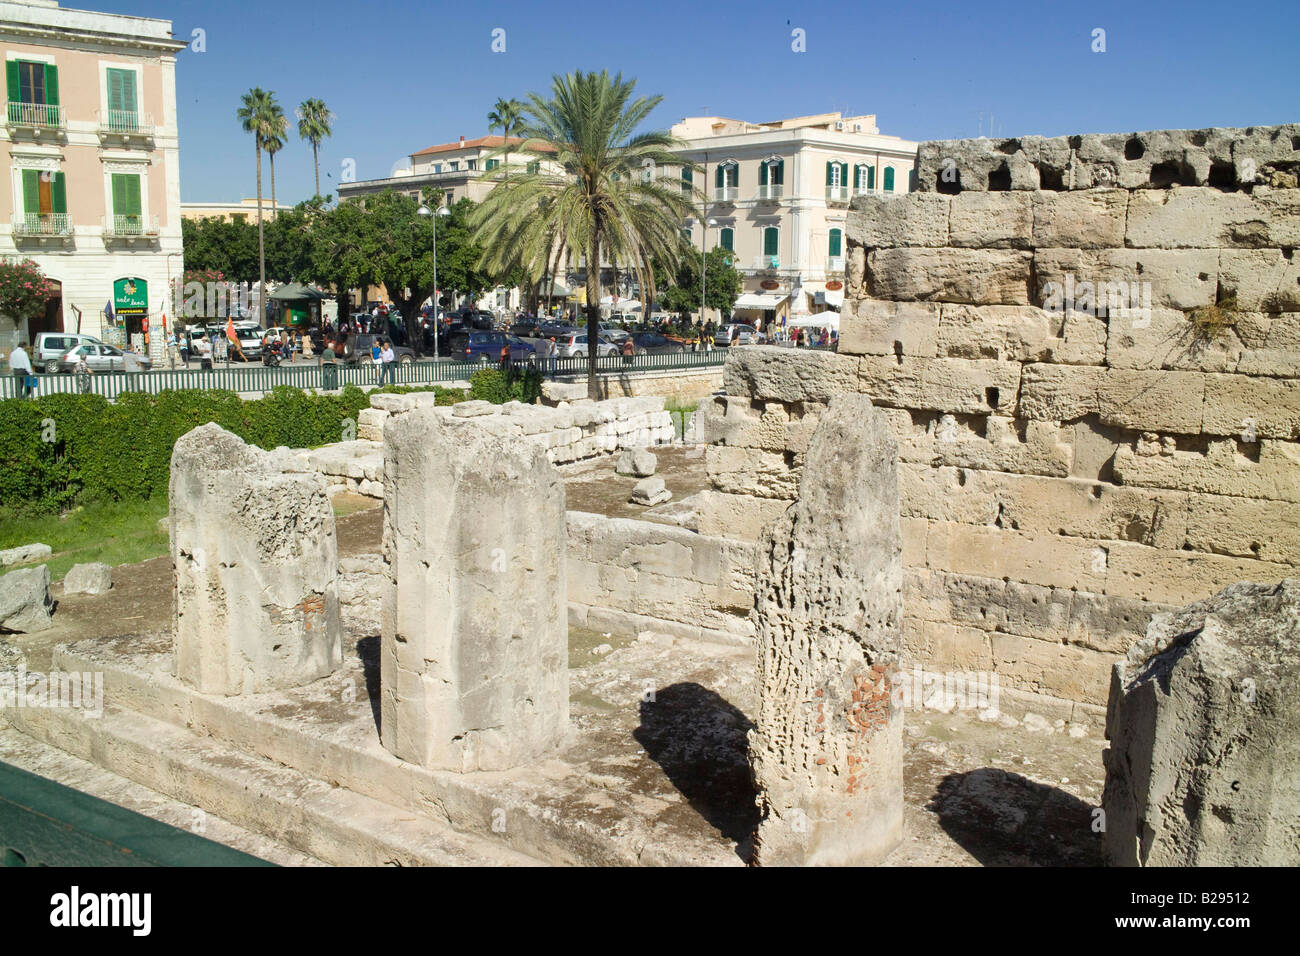 Temple of Apollo Syracusa Sicily Date 28 05 2008 Ref ZB693 114320 0030 COMPULSORY CREDIT World Pictures Photoshot - Stock Image